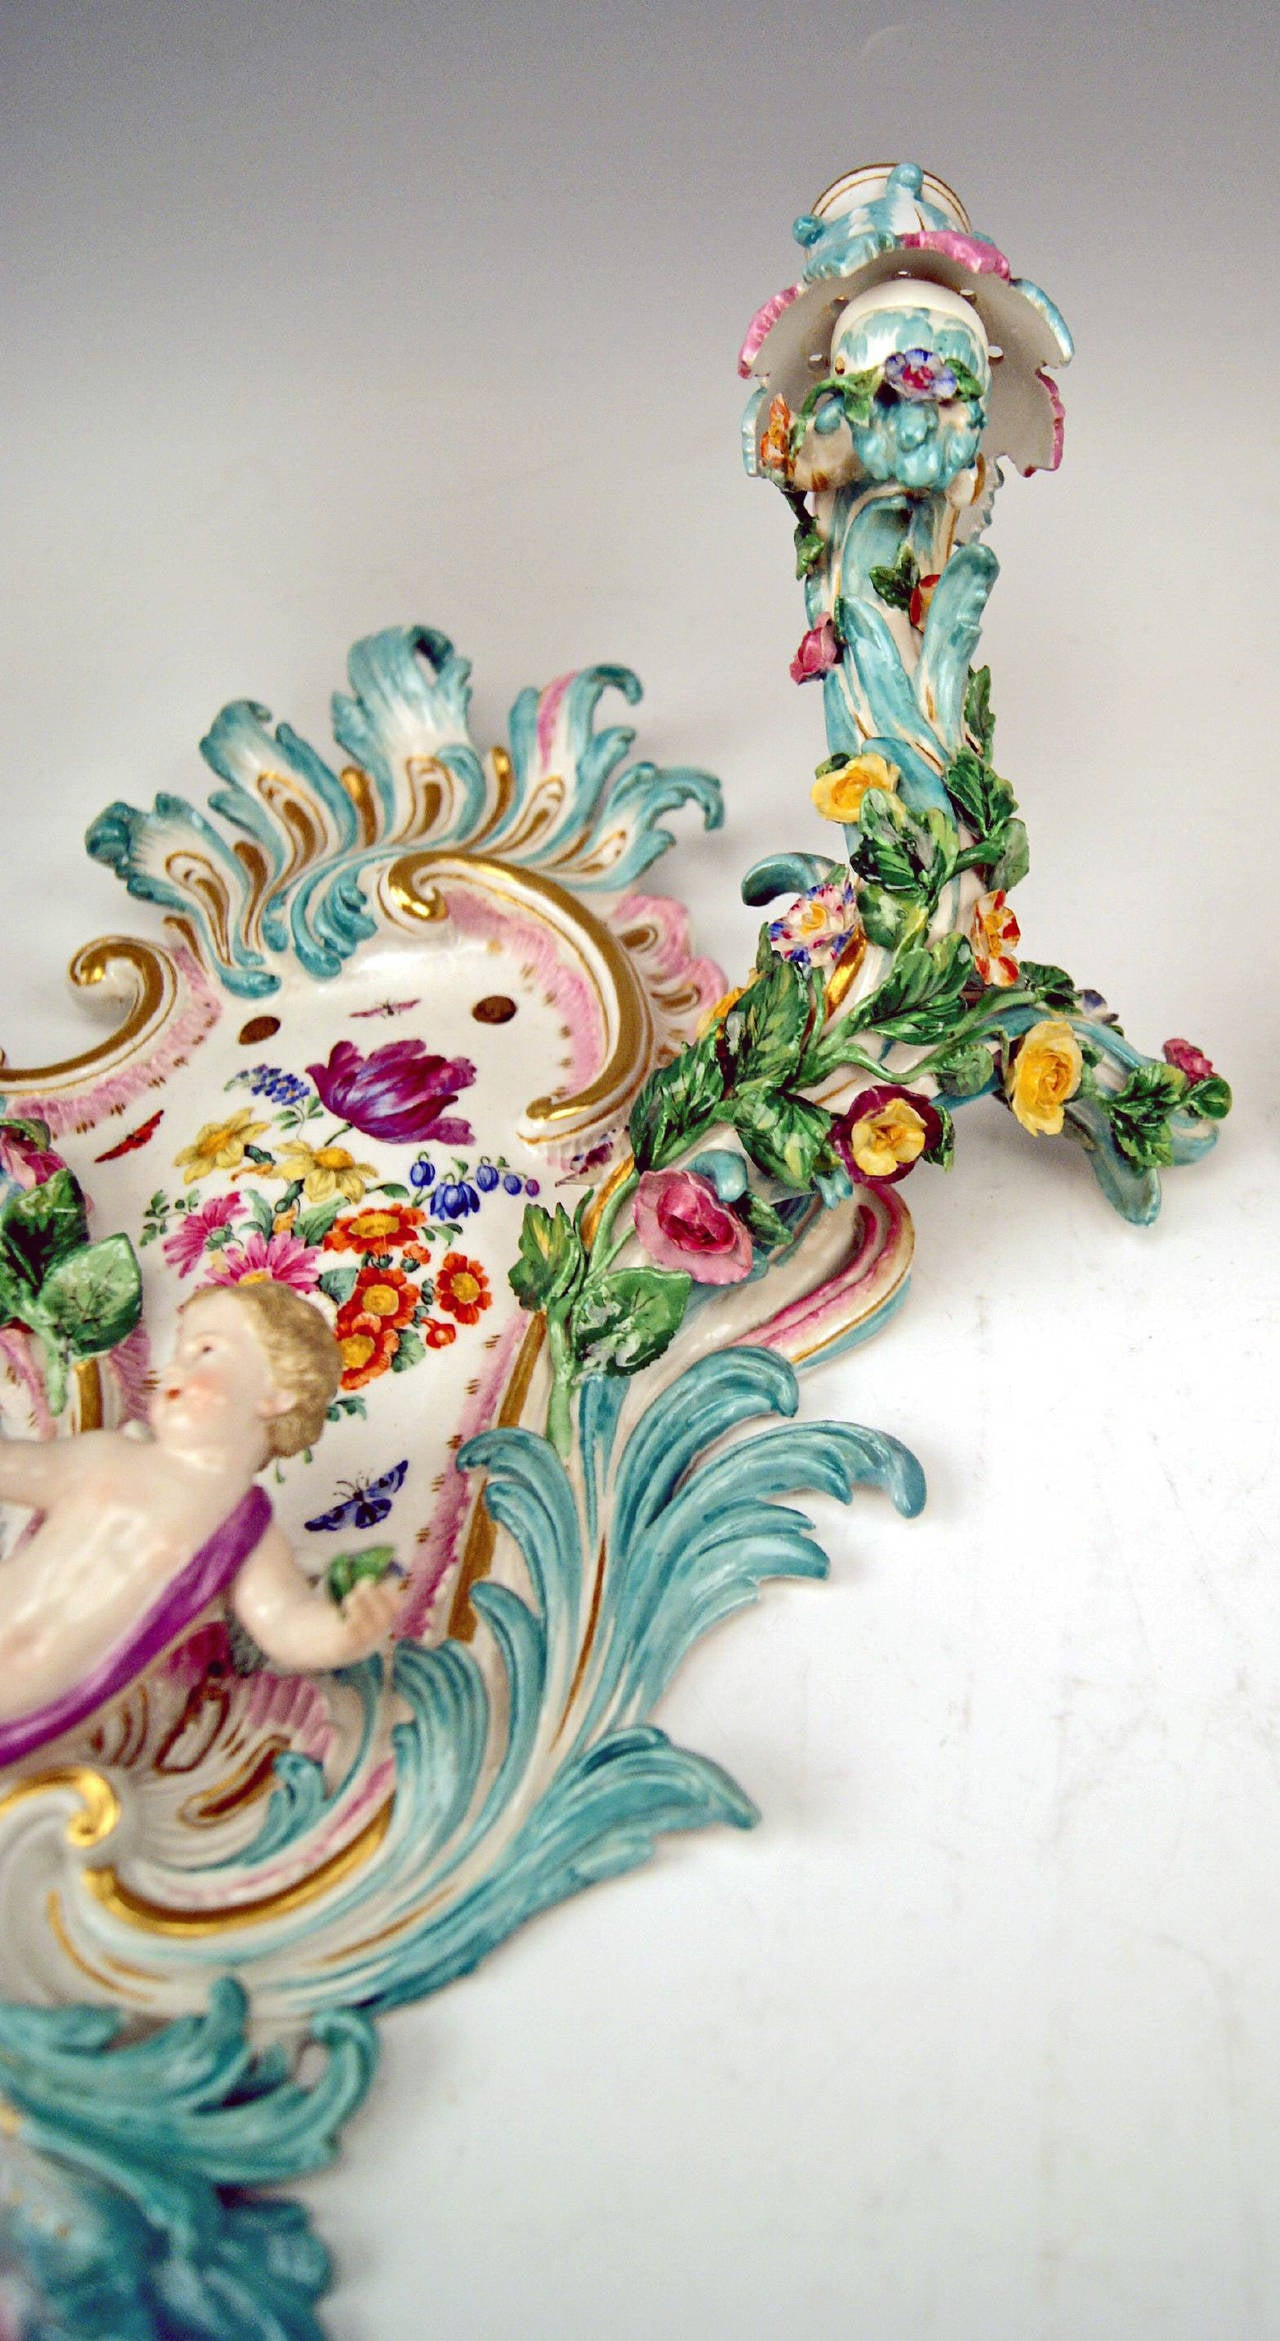 Porcelain Meissen Pair of Sconces Flowers and Cherubs Vintage Made, circa 1860-1870 For Sale